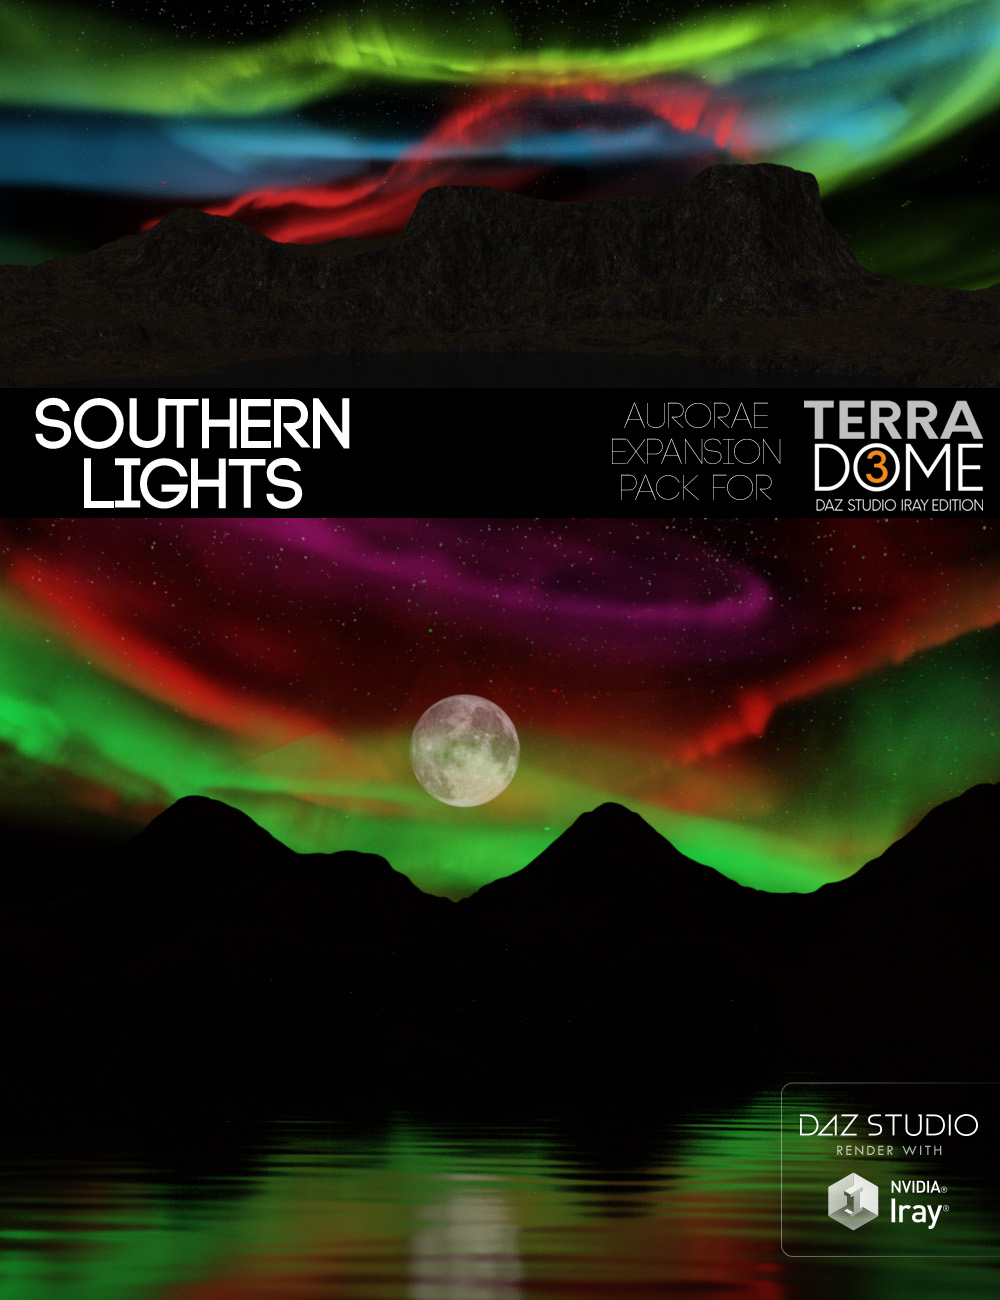 Southern Lights for TerraDome3 by: MortemVetus, 3D Models by Daz 3D